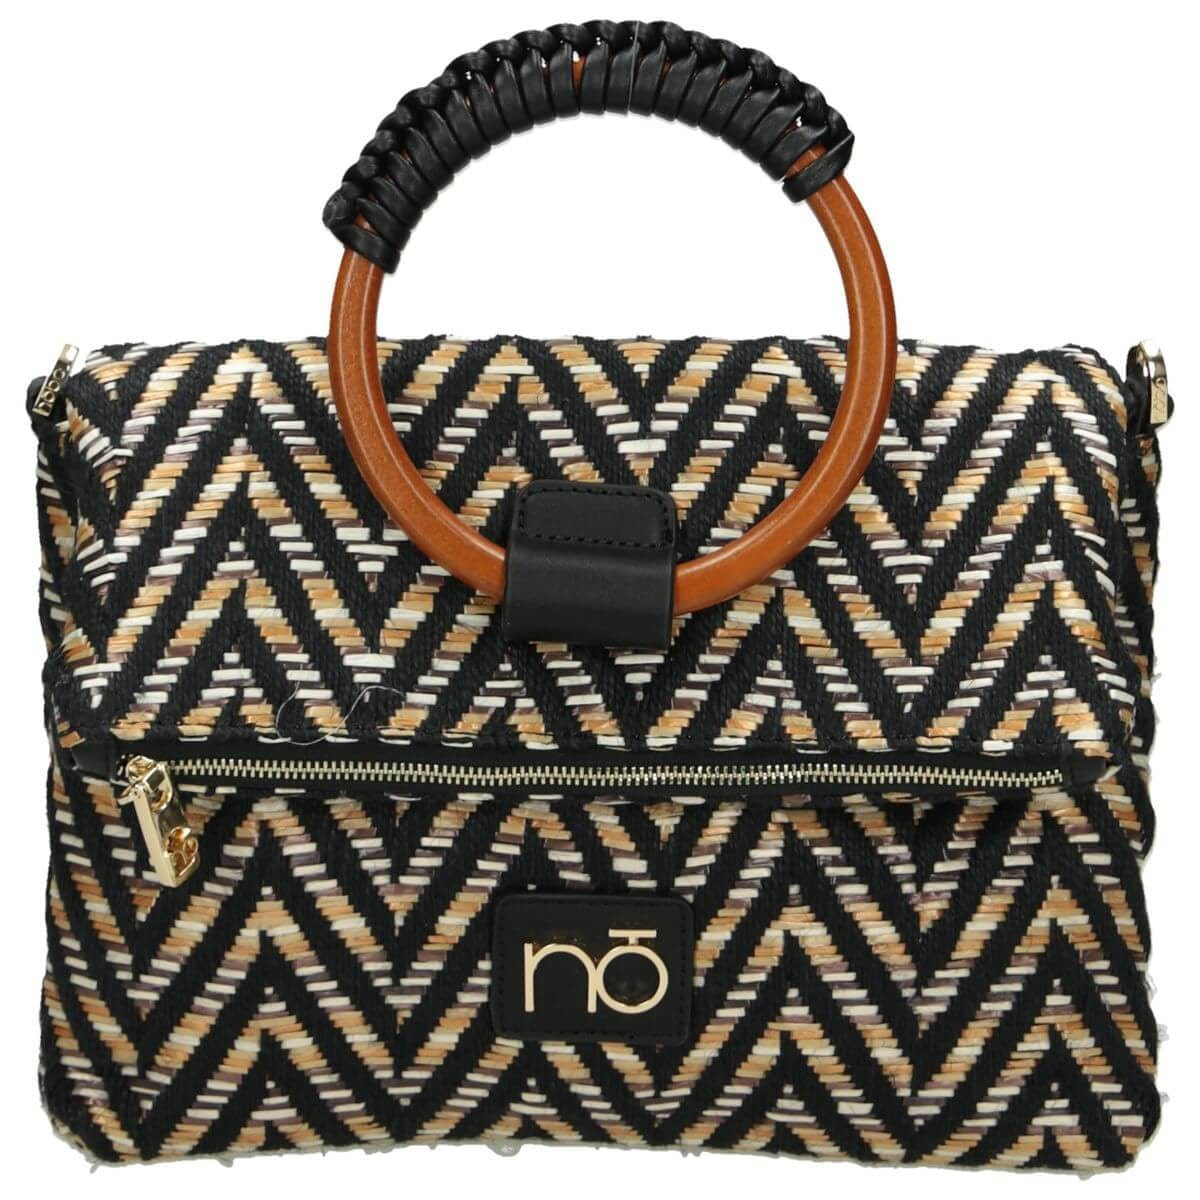 Nobo Woman's Bag NBAG-I1880-CM20